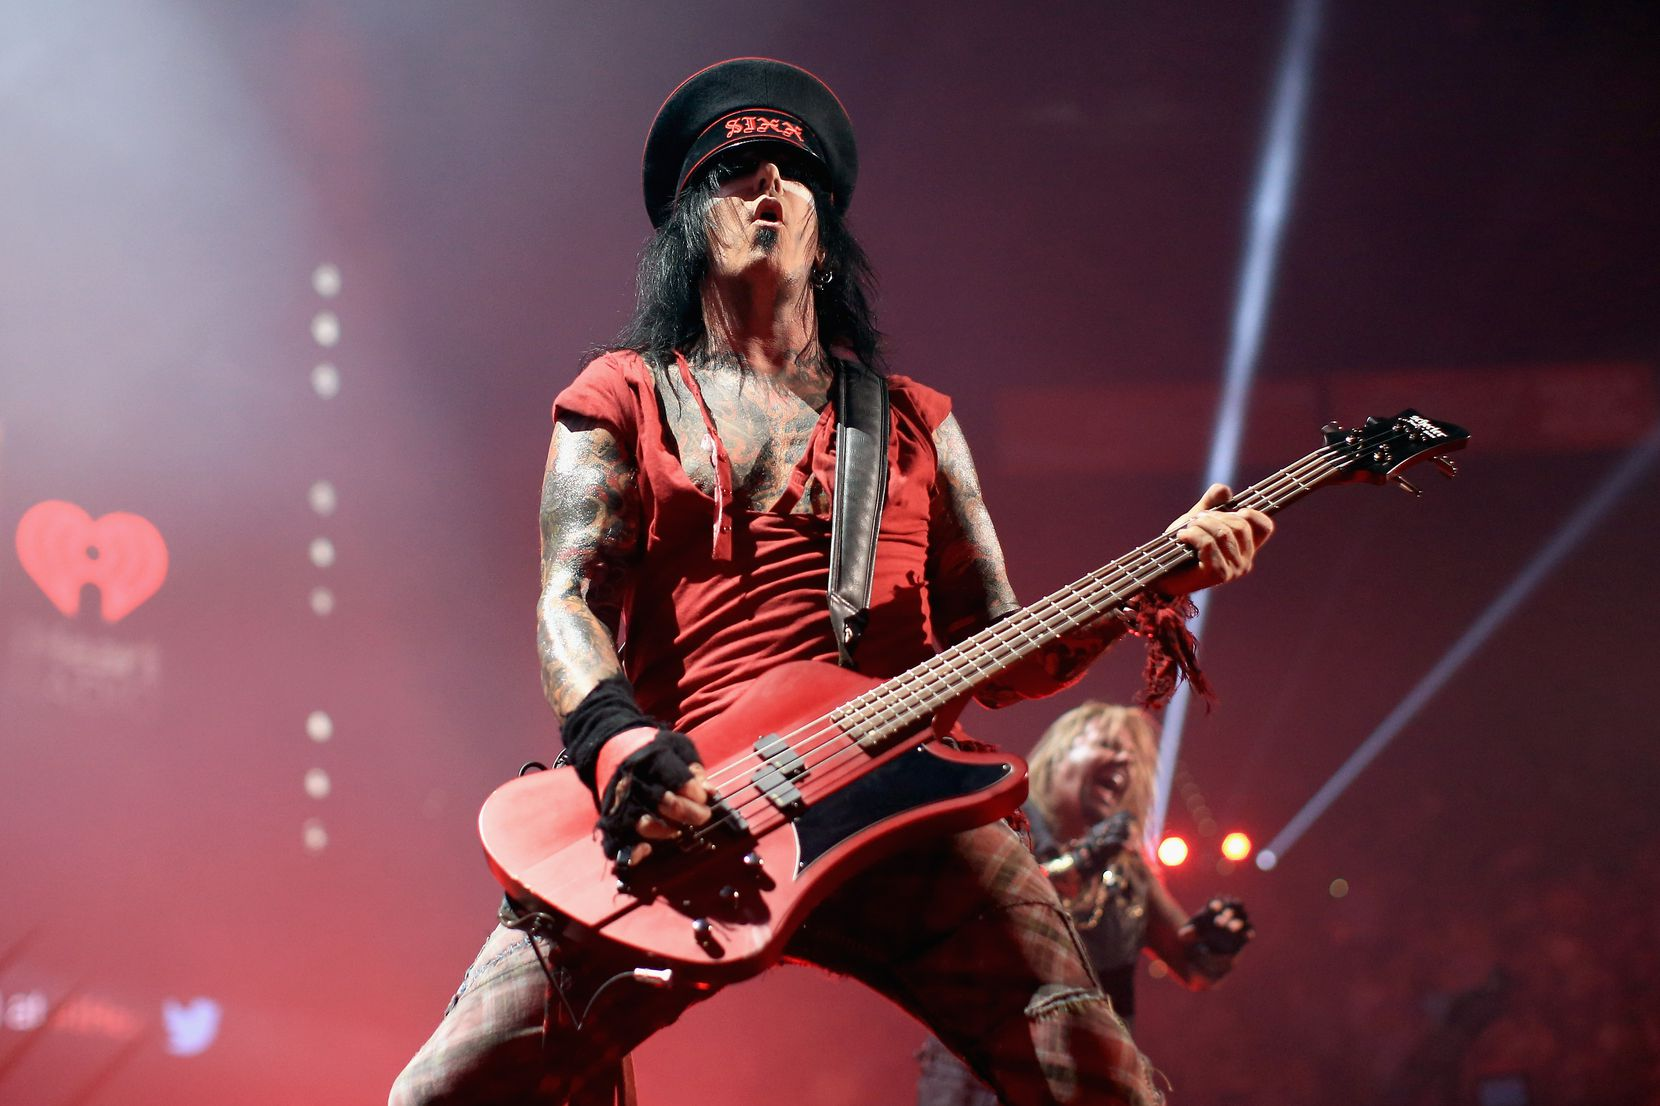 LAS VEGAS, NV - SEPTEMBER 19: Musician Nikki Sixx of Motley Crue performs onstage during the 2014 iHeartRadio Music Festival at the MGM Grand Garden Arena on September 19, 2014 in Las Vegas, Nevada.